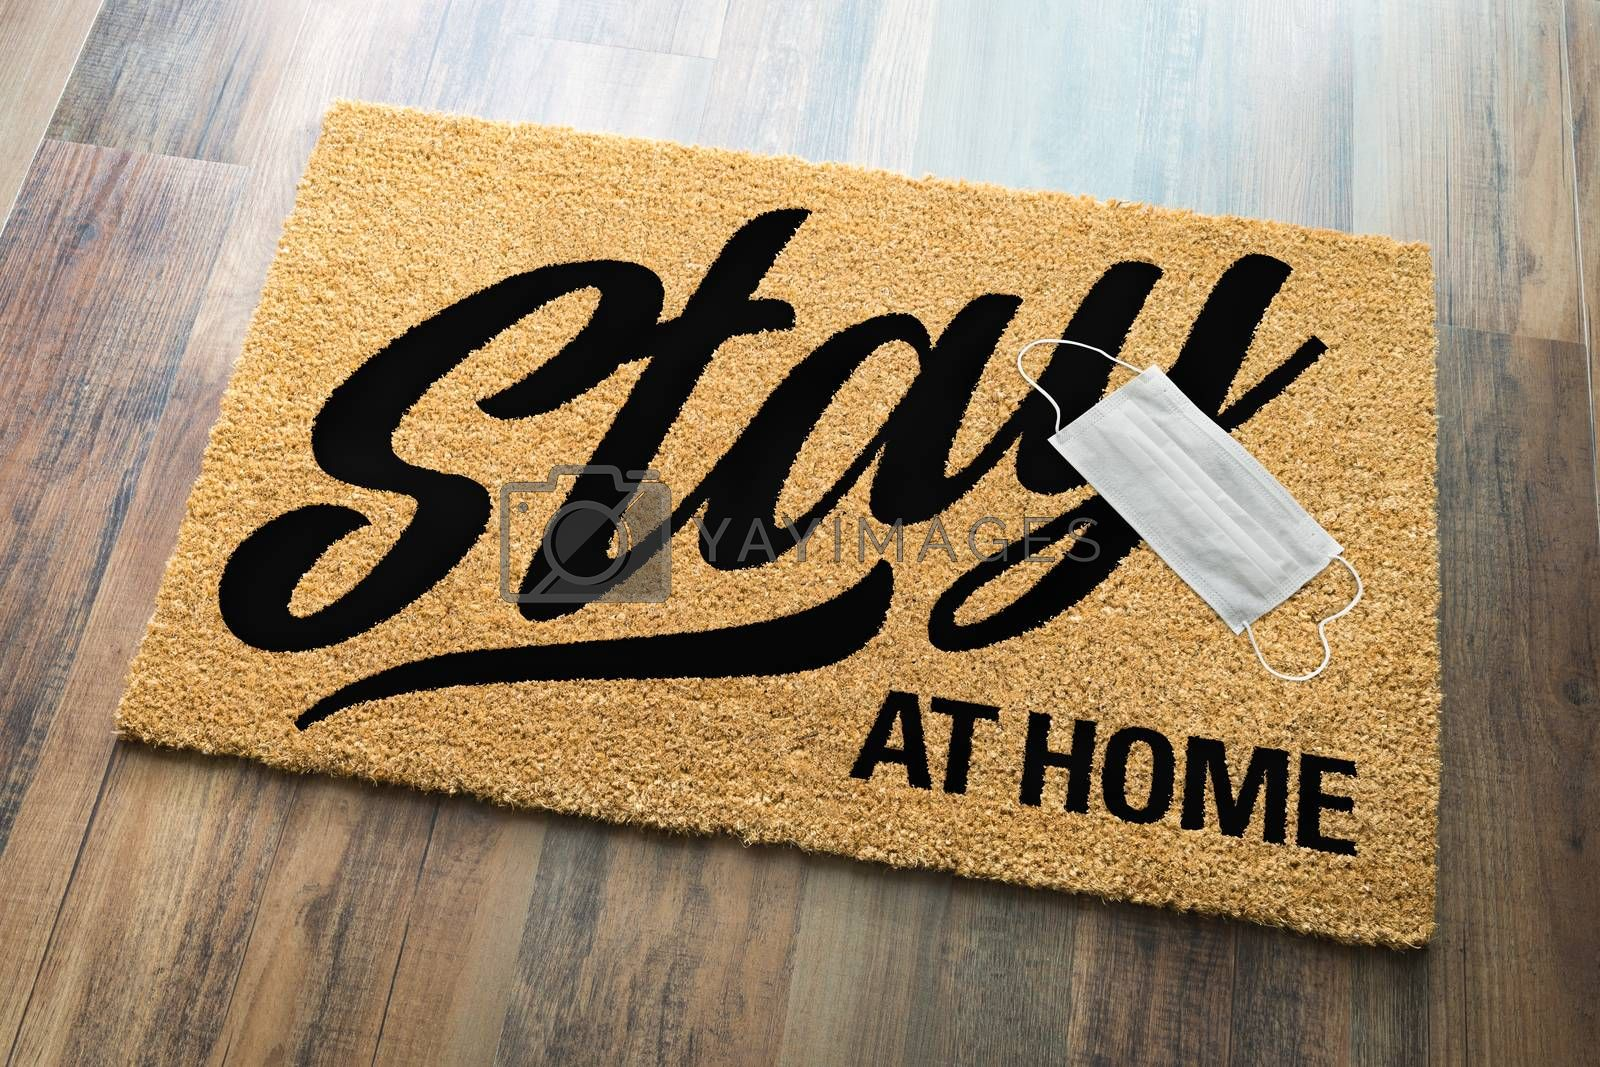 Stay At Home Welcome Mat with Medical Face Face Resting On Floor.